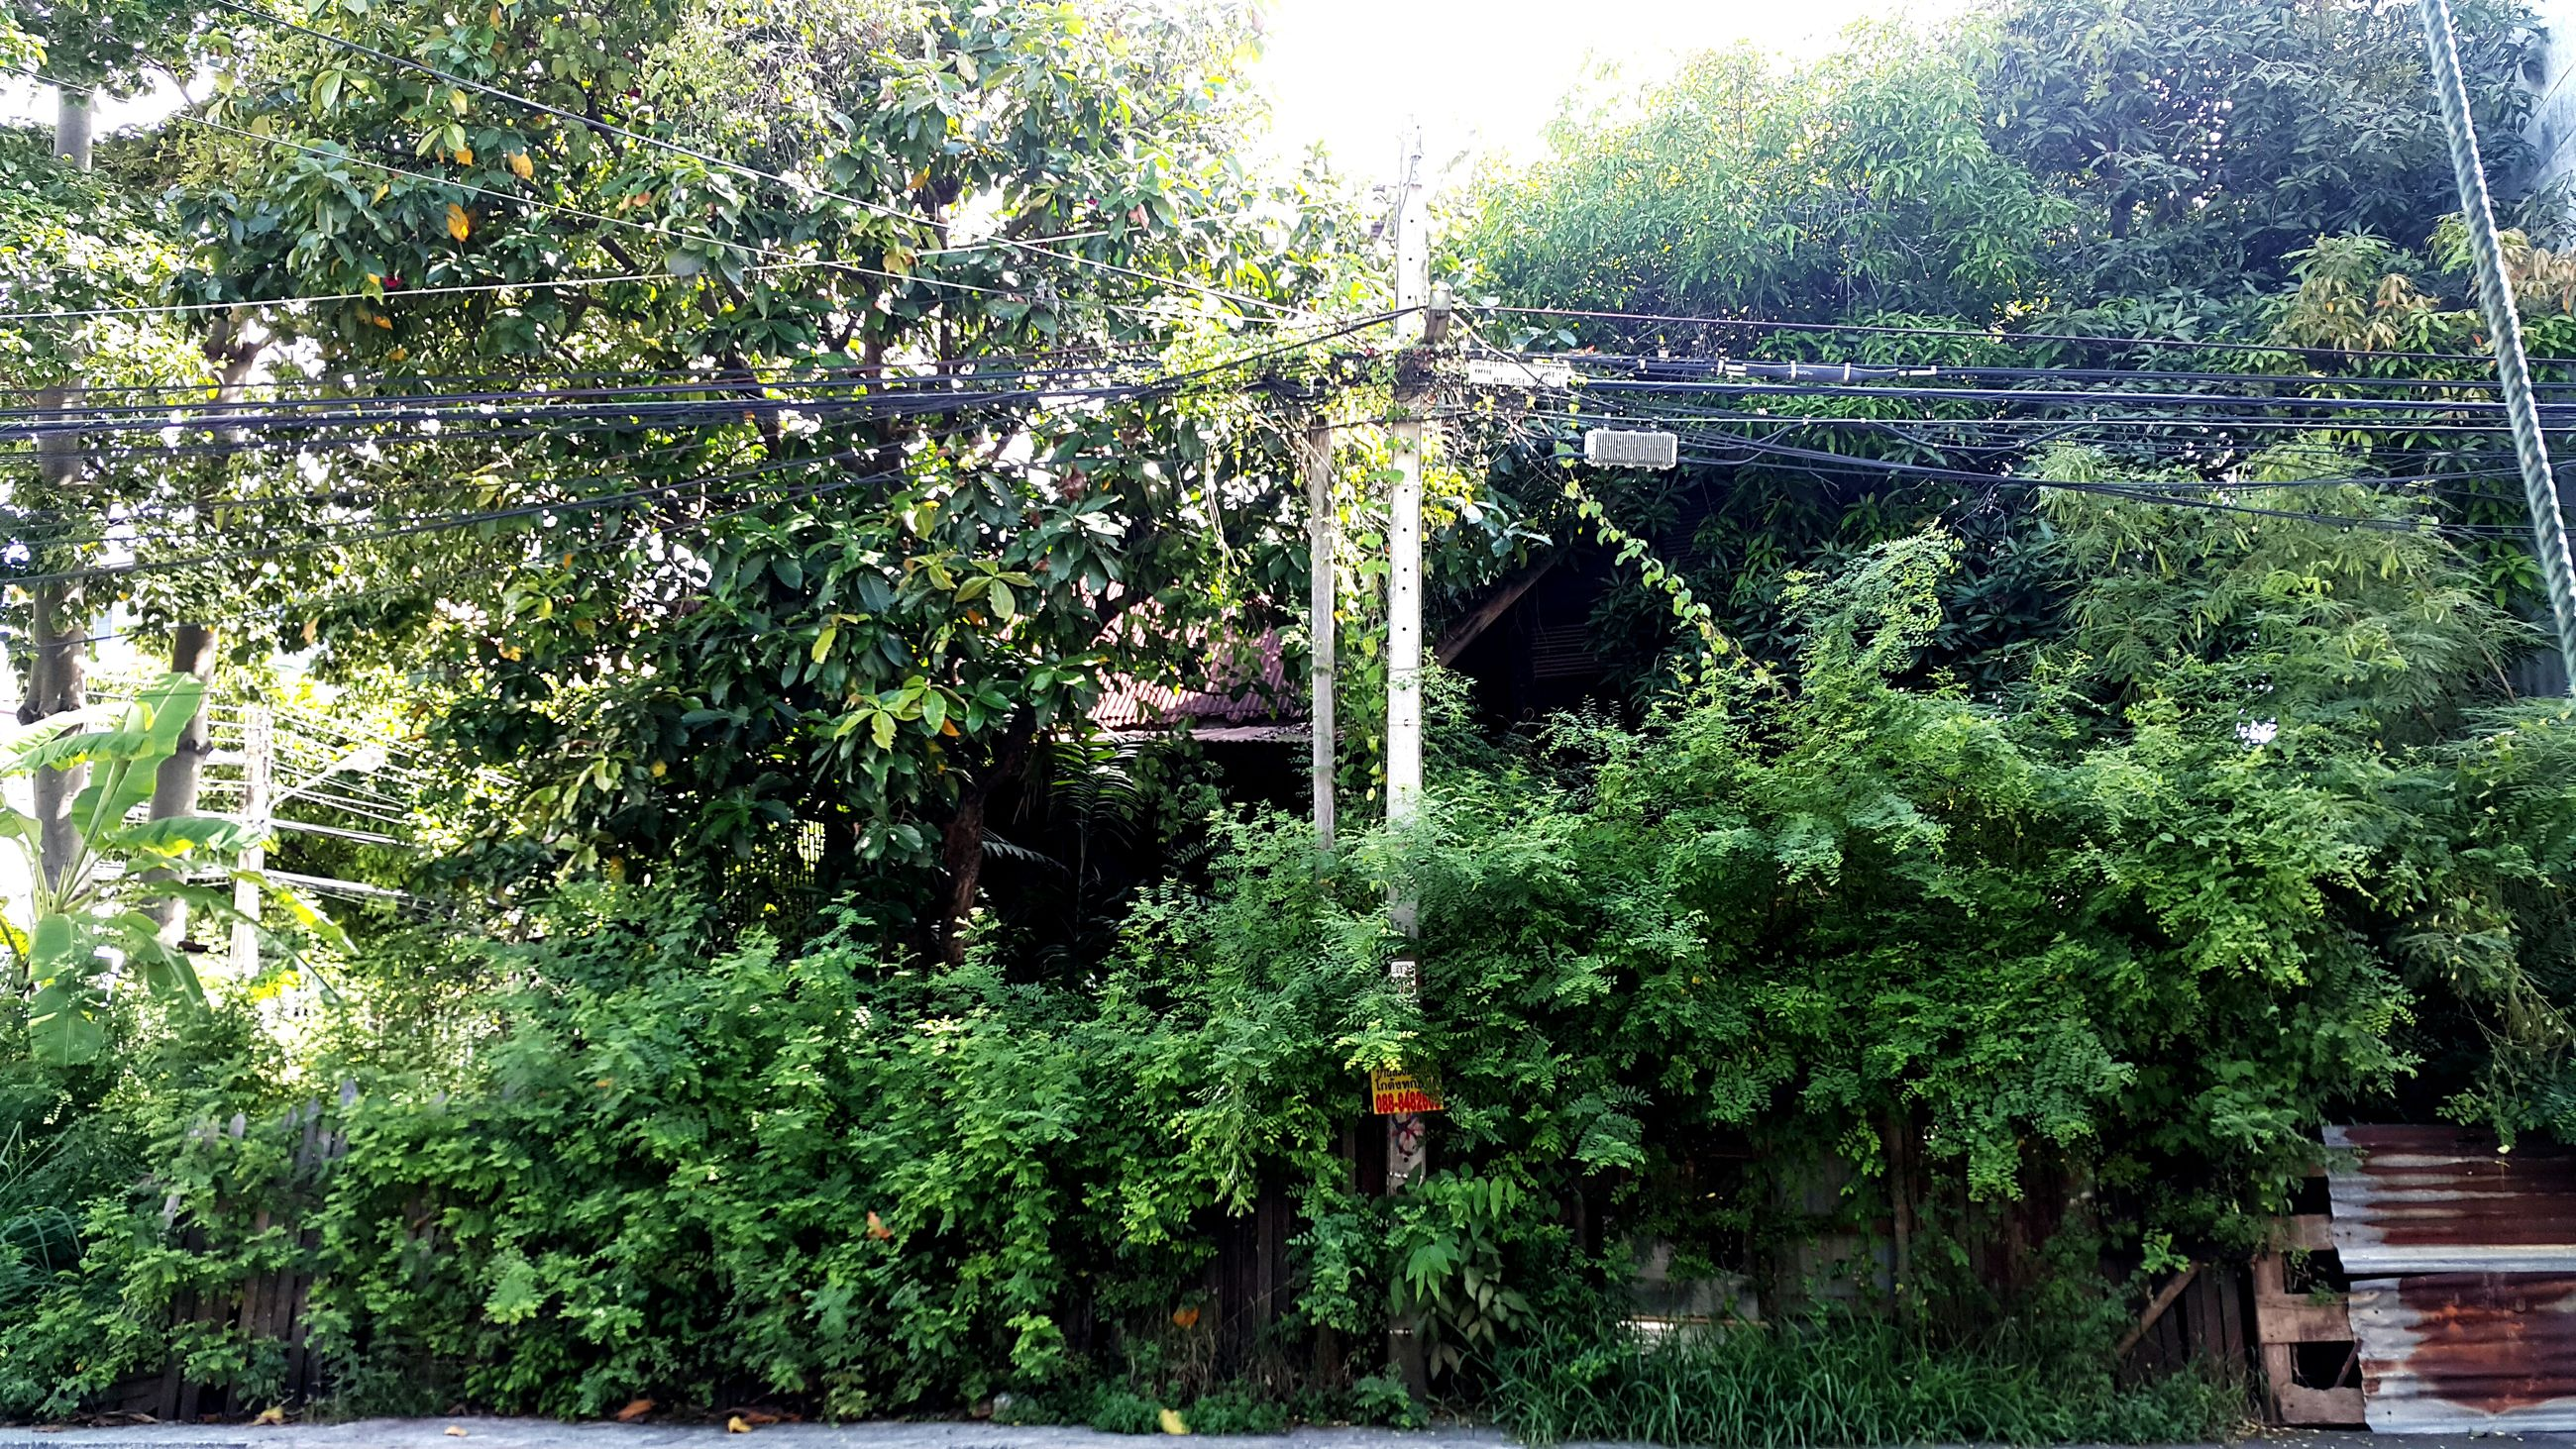 tree, growth, plant, green color, built structure, architecture, fence, nature, building exterior, ivy, house, lush foliage, branch, day, outdoors, no people, railing, tranquility, growing, forest